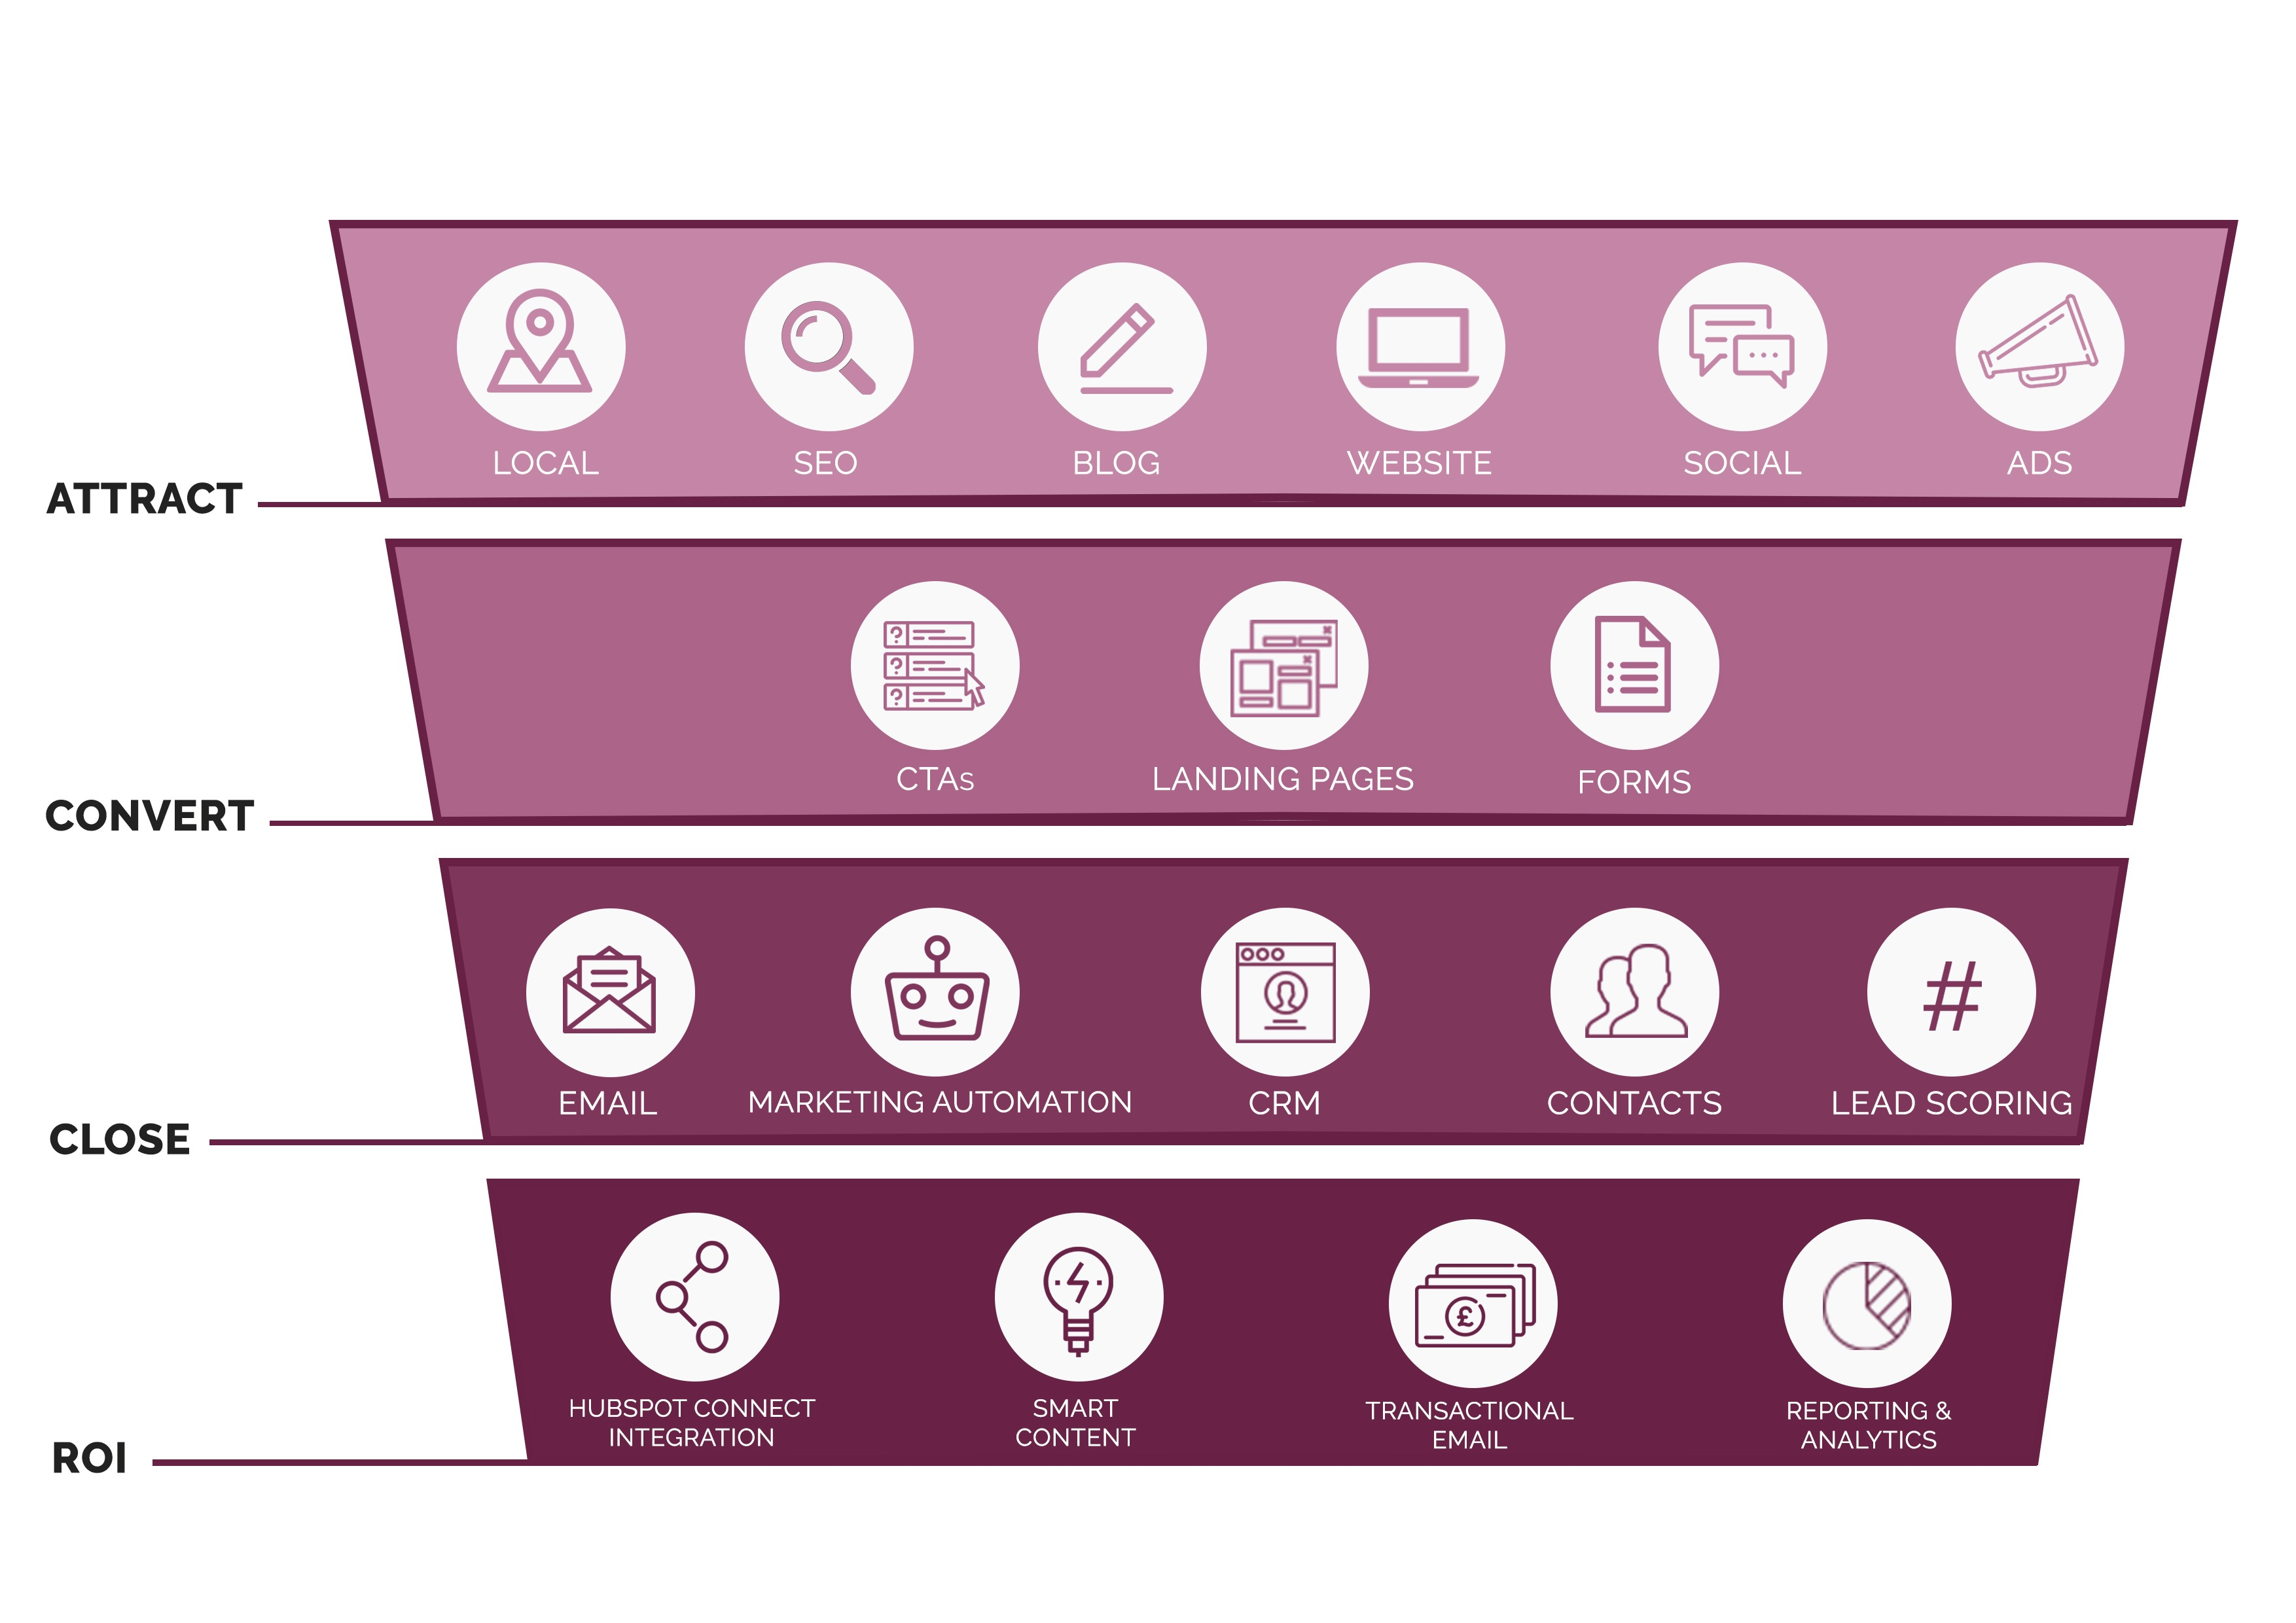 The Inbound Marketing Funnel showing Attract, Convert, Close and ROI sections of customer journey